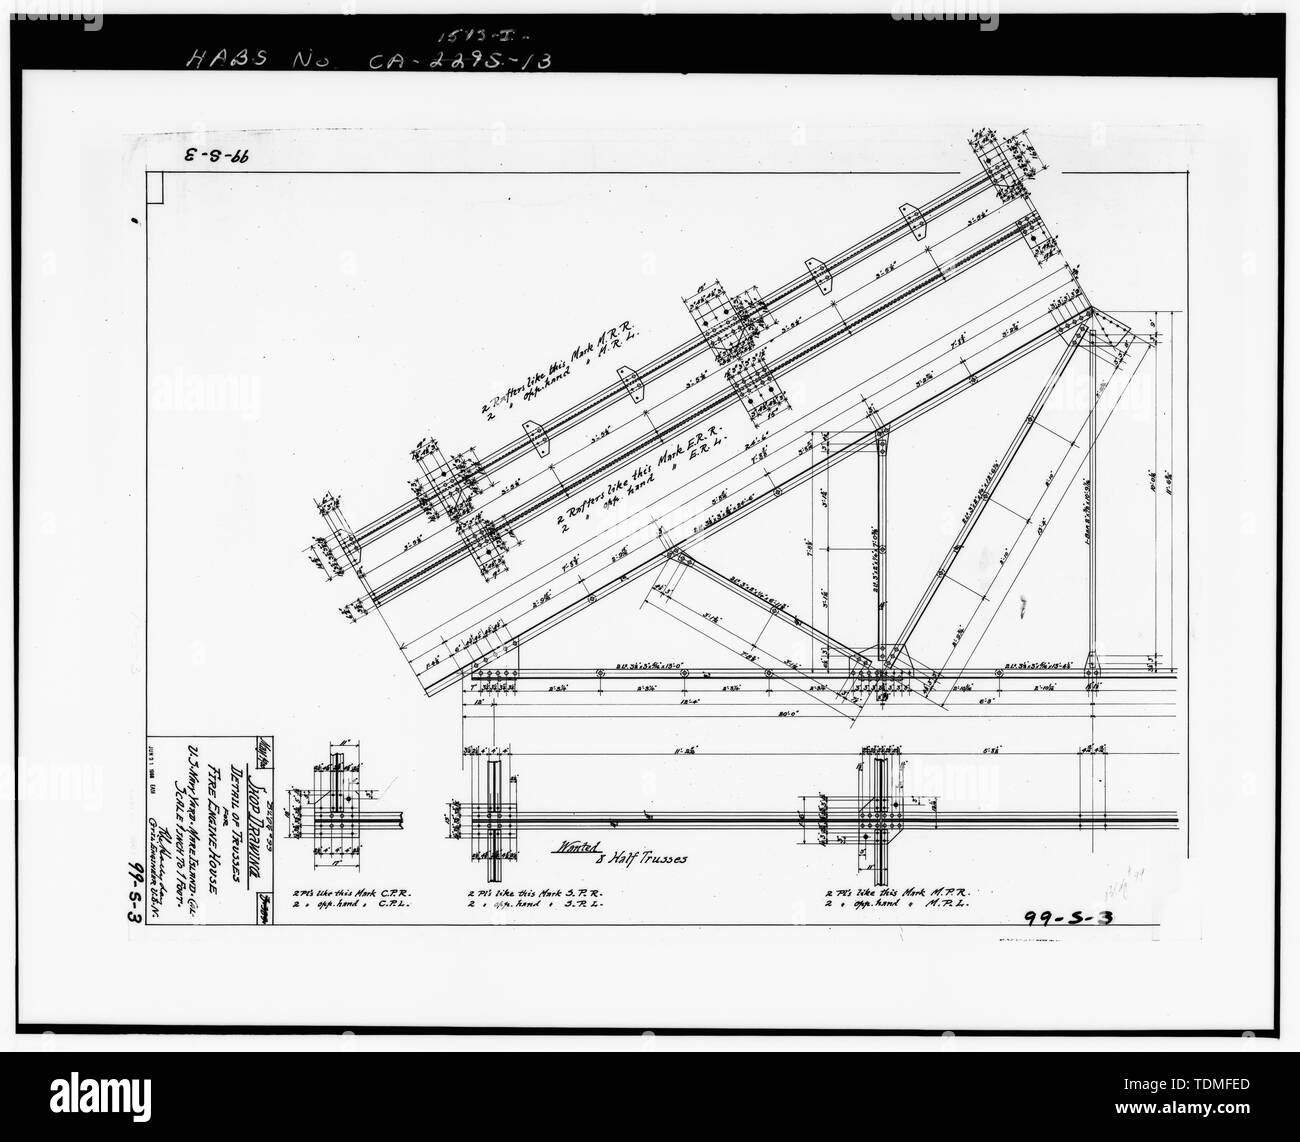 PHOTOCOPY OF DRAWING 99-S-3, SHOP DRAWING, DETAIL OF TRUSSES FOR FIRE ENGINE HOUSE, MAY 1900. - Mare Island Naval Shipyard, Firehouse, Vallejo, Solano County, CA Stock Photo